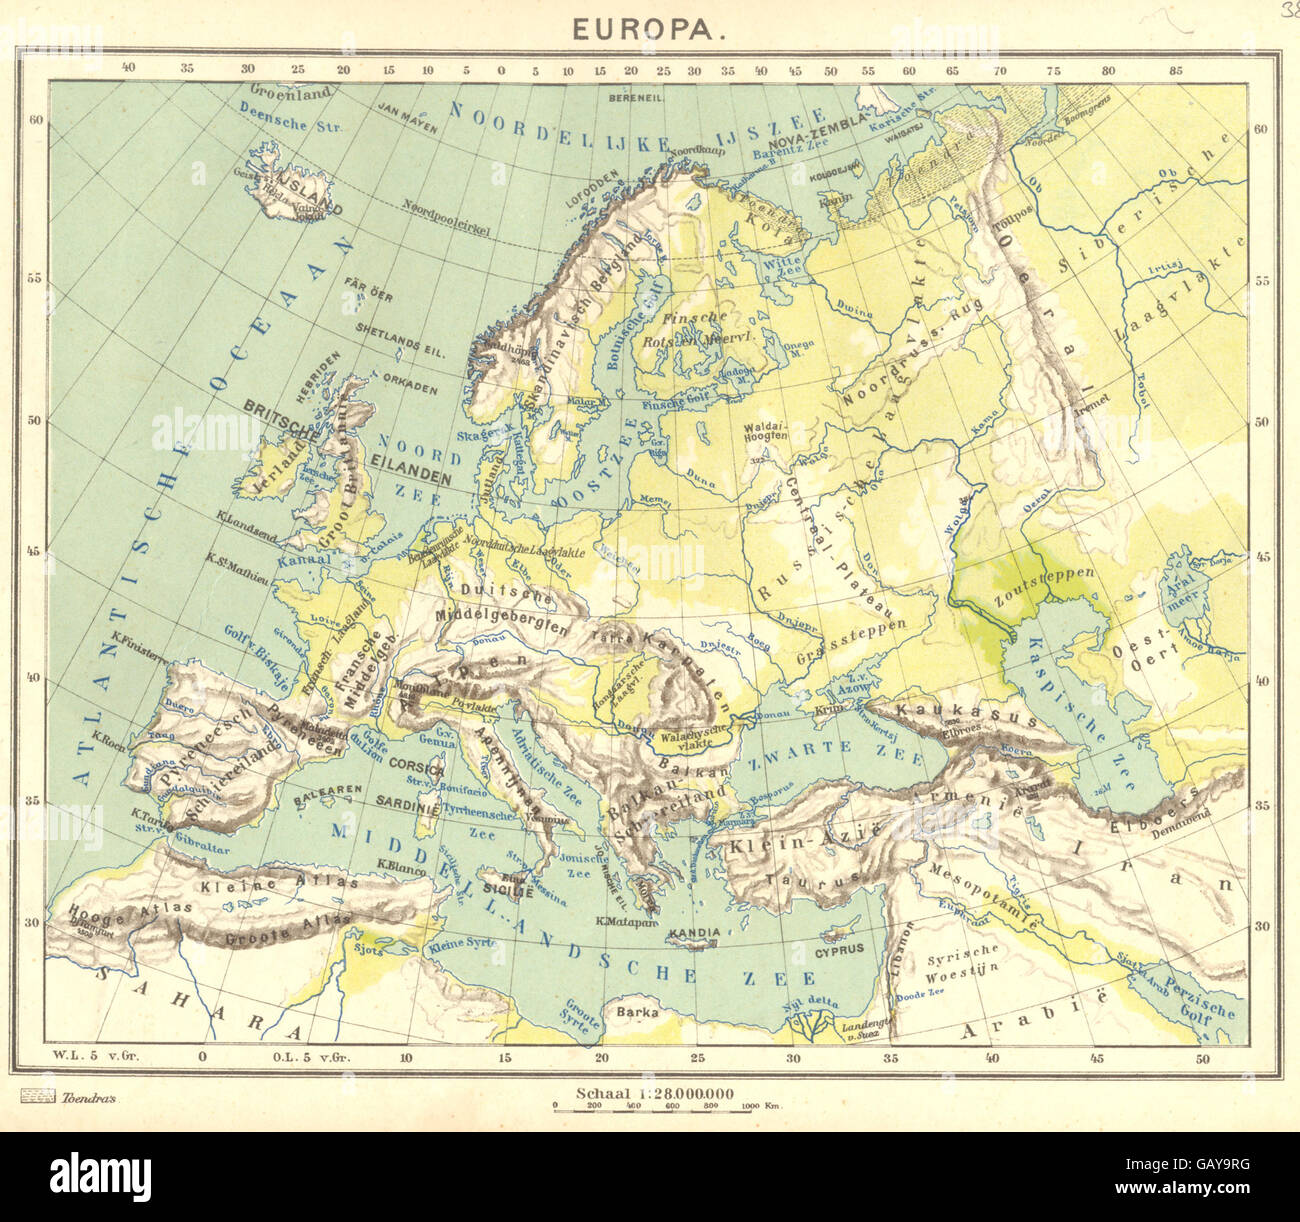 Map Of Europe 1922.Europe Europa 1 1922 Vintage Map Stock Photo 110009188 Alamy